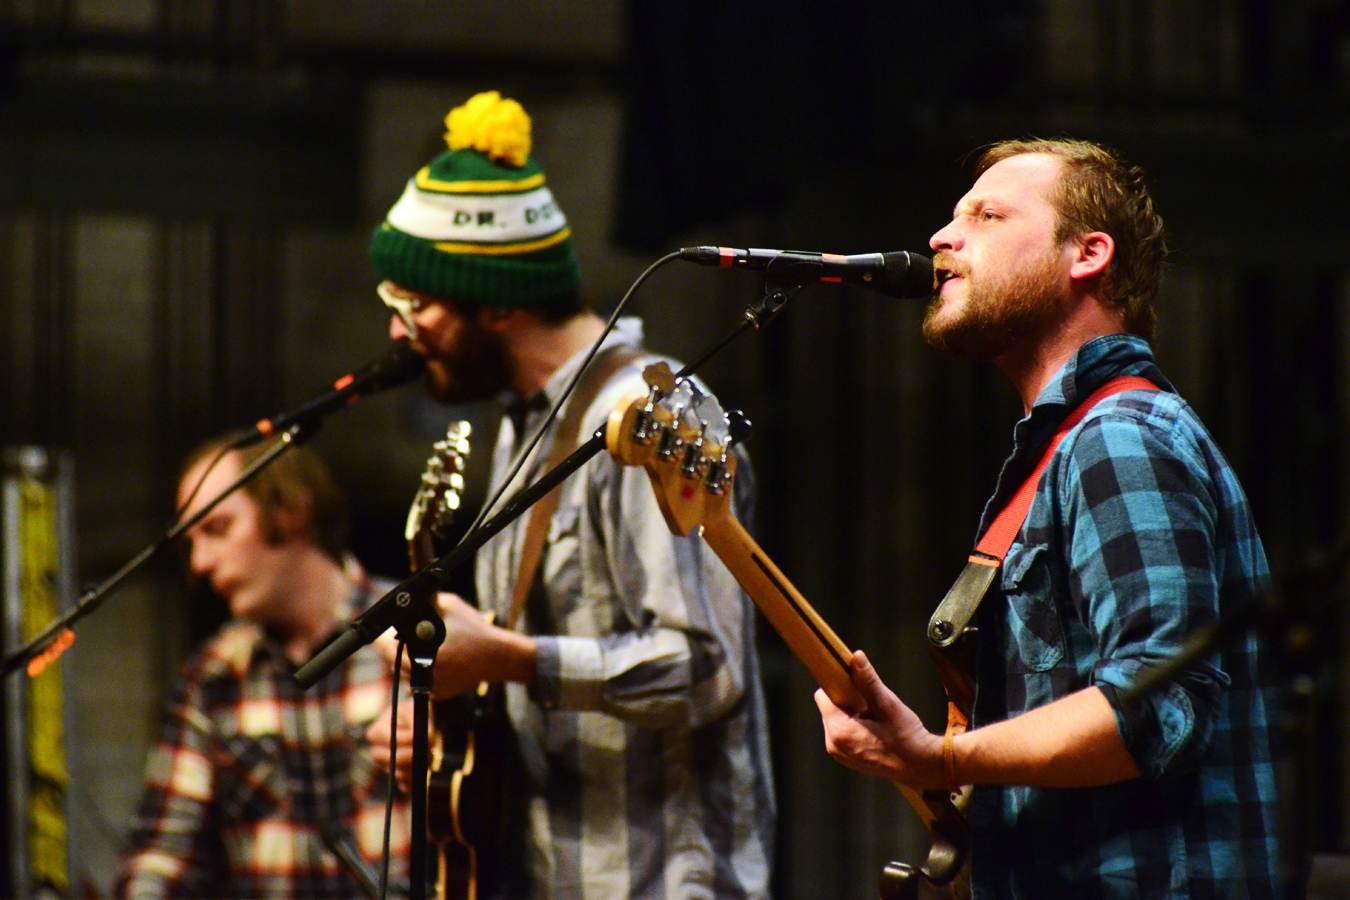 Bass player Toby Leaman shares most singing duties with guitarist Scott McMicken, but all of Dr. Dog's members contribute harmonies.